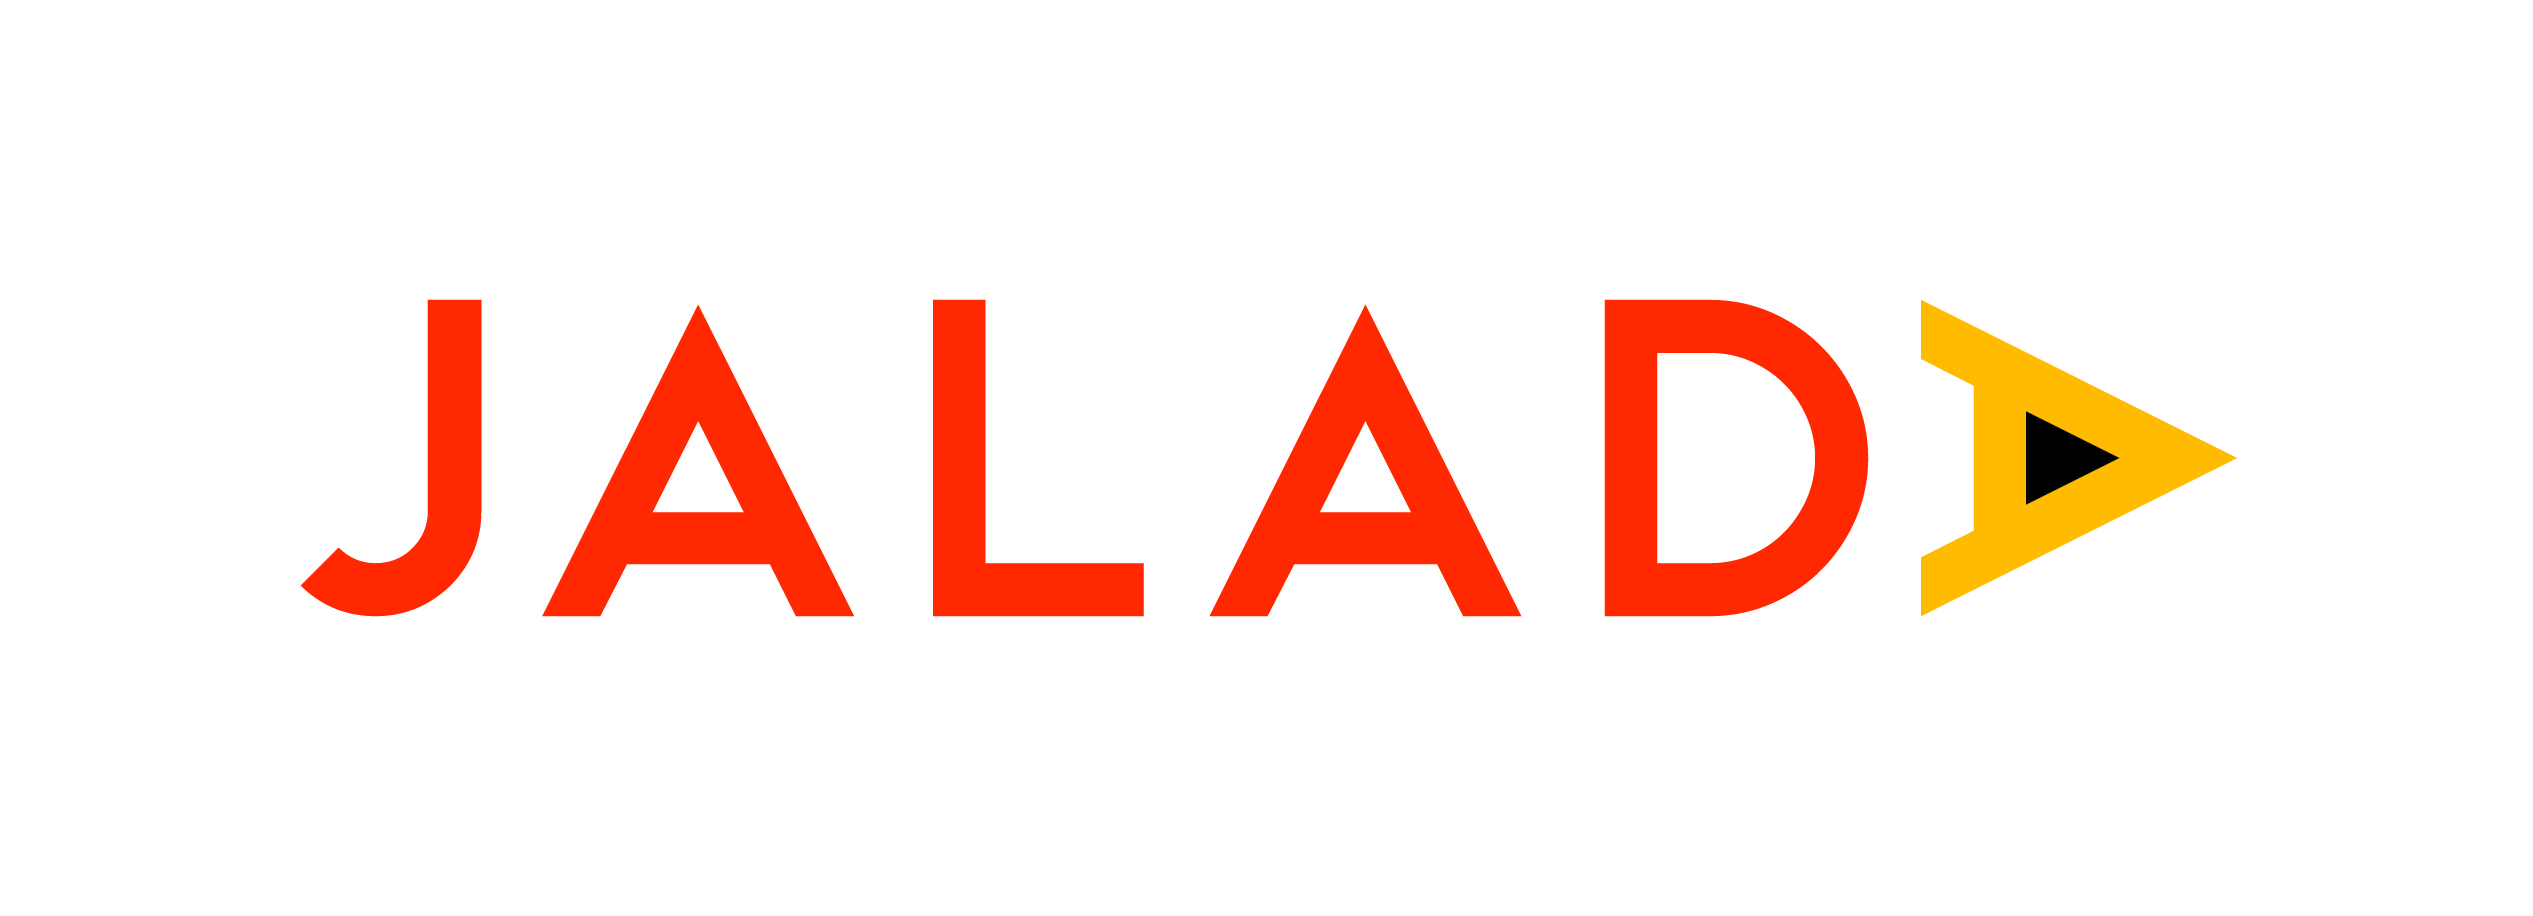 jalada_logo_final-01